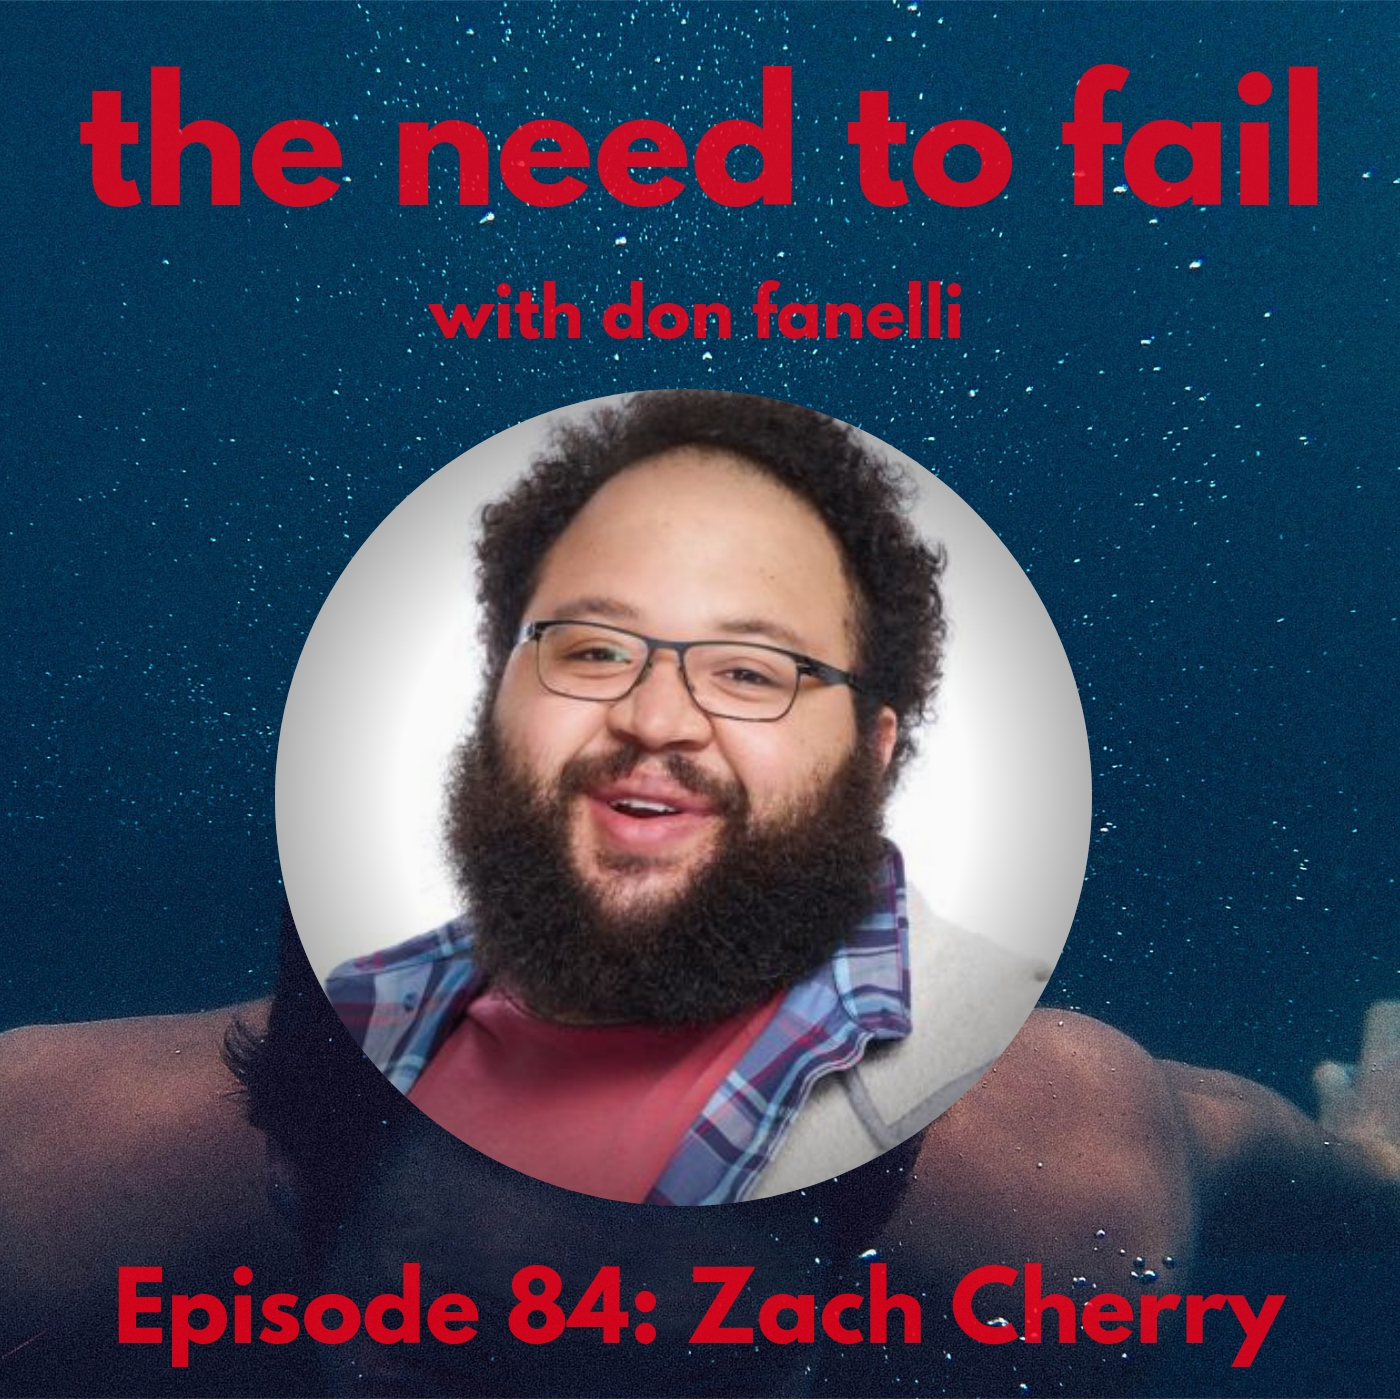 Episode 84: Zach Cherry